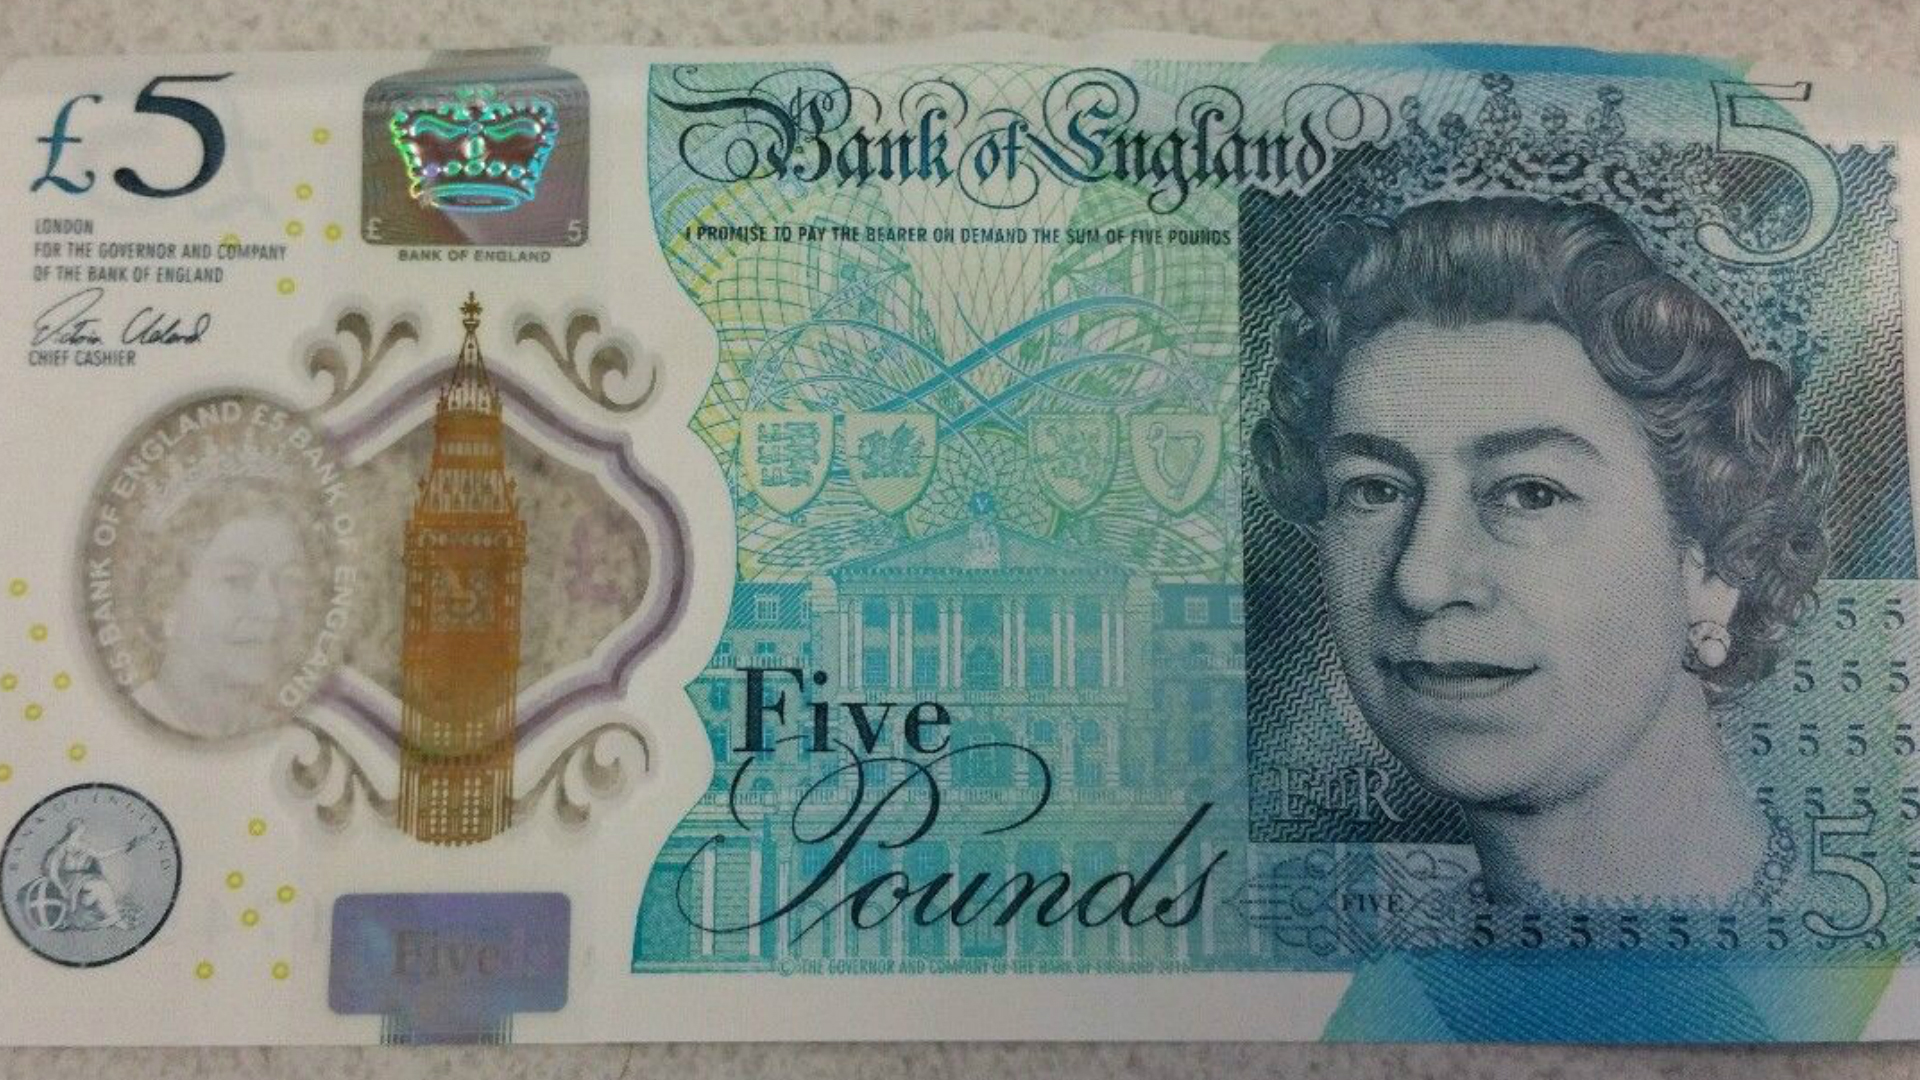 The new £5 note